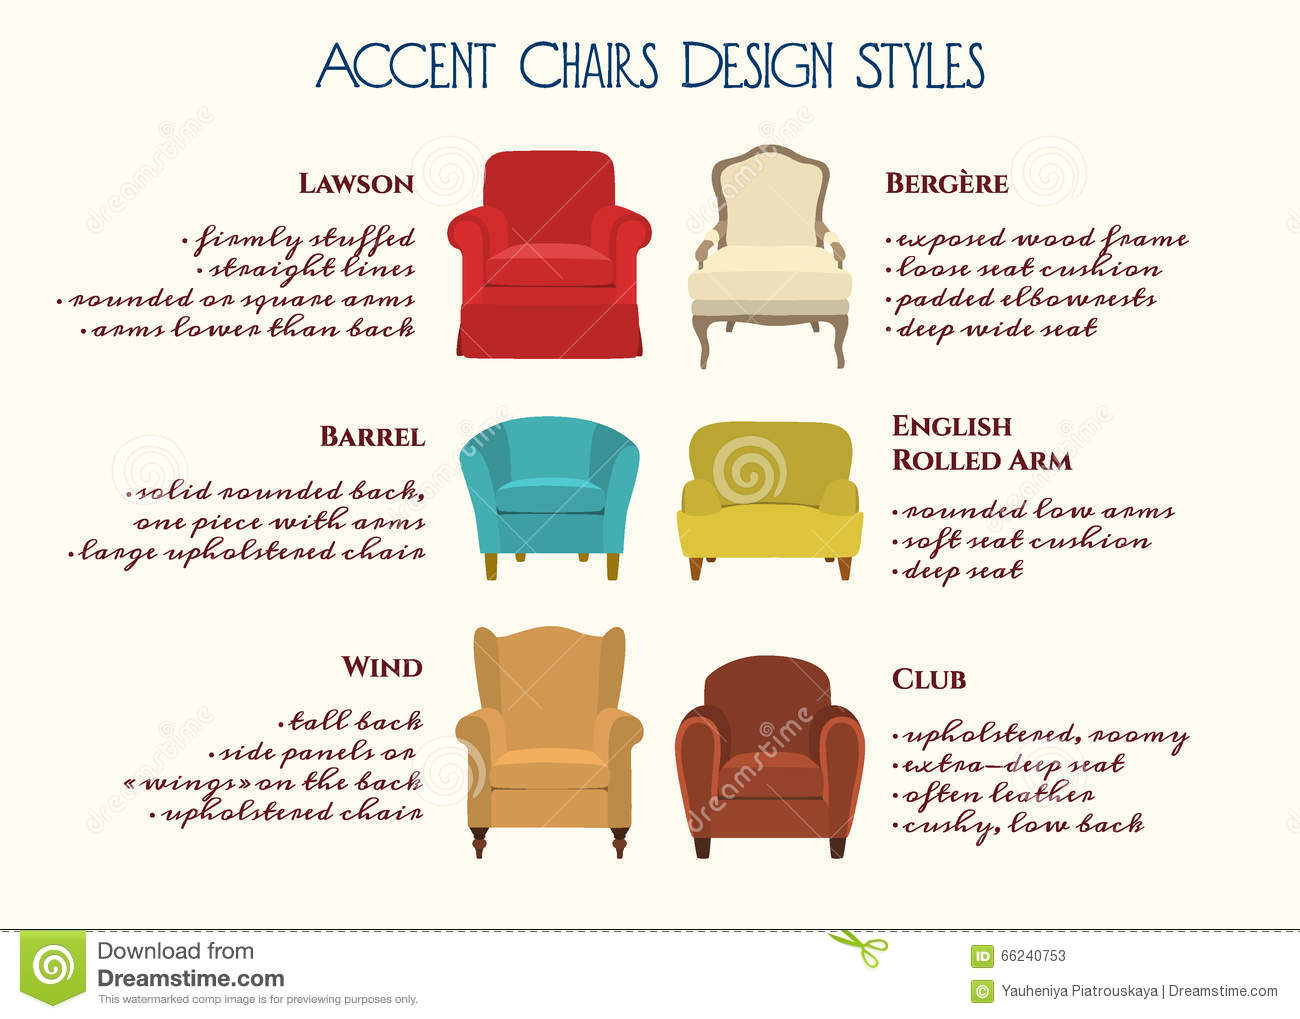 Accent chairs design infographic stock vector image for Types of design styles